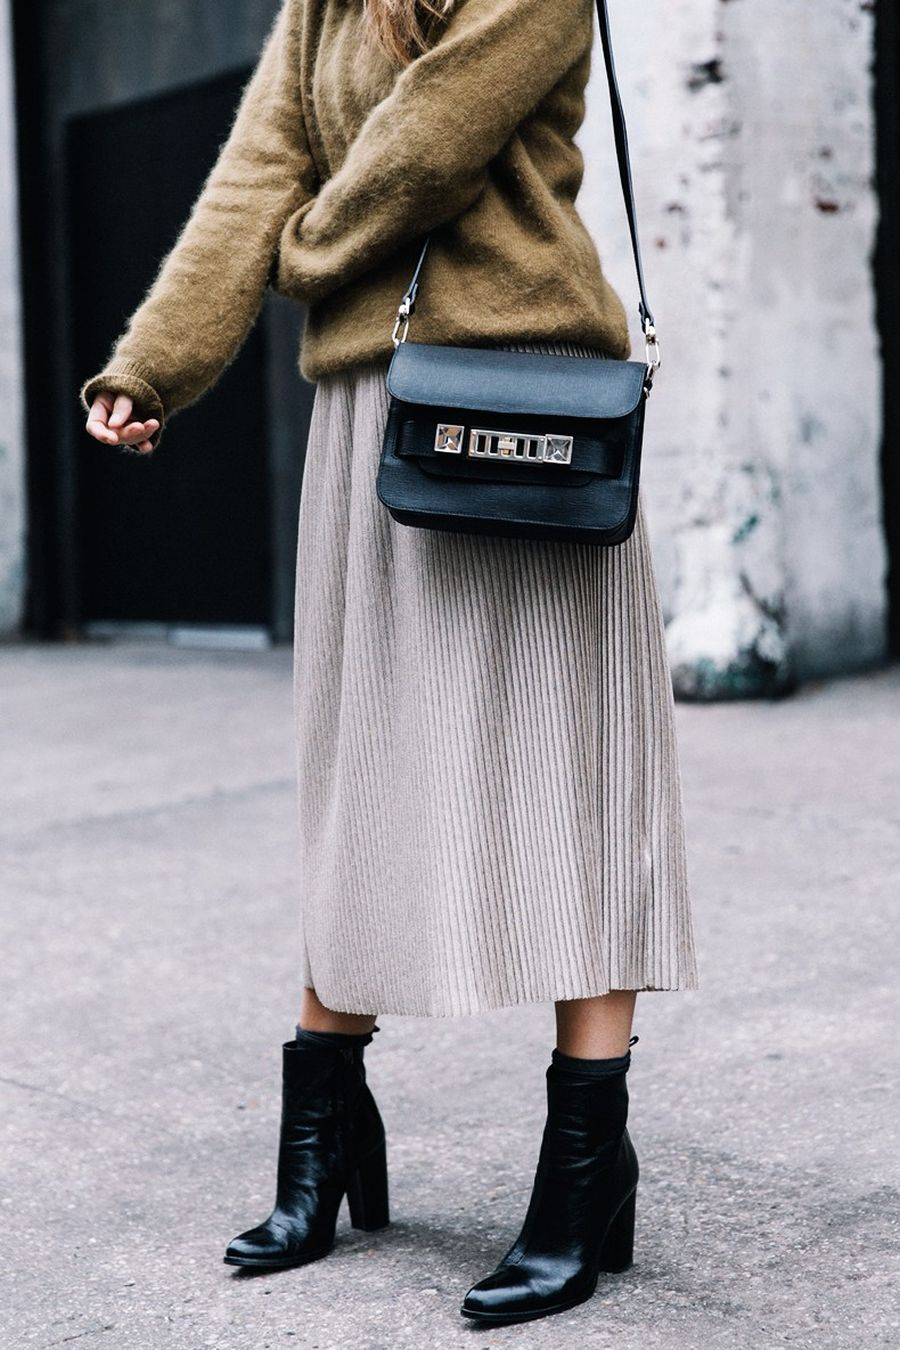 Inspiring skirt and boots combinations for fall and winter outfits 2